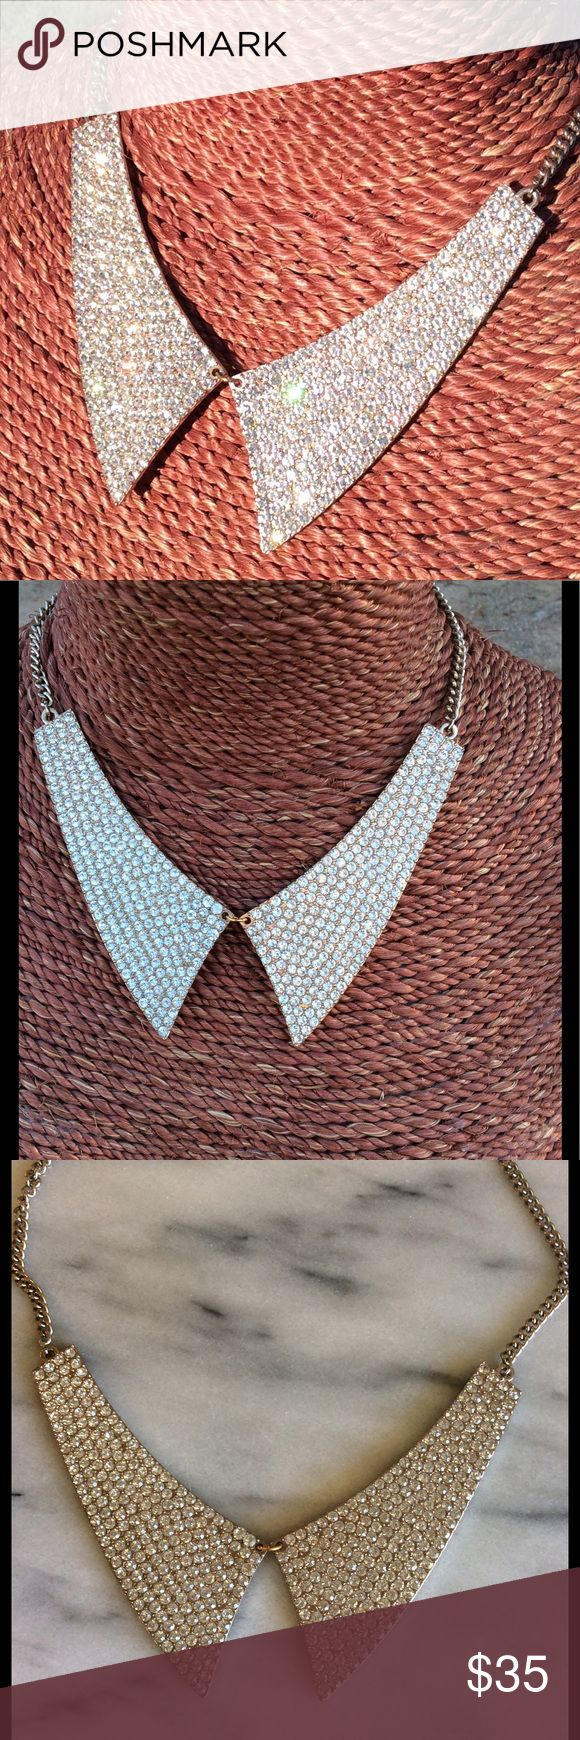 Gorgeous Faux Diamond studded collar necklace Collar necklace with faux diamonds for that special occasion Jewelry Necklaces